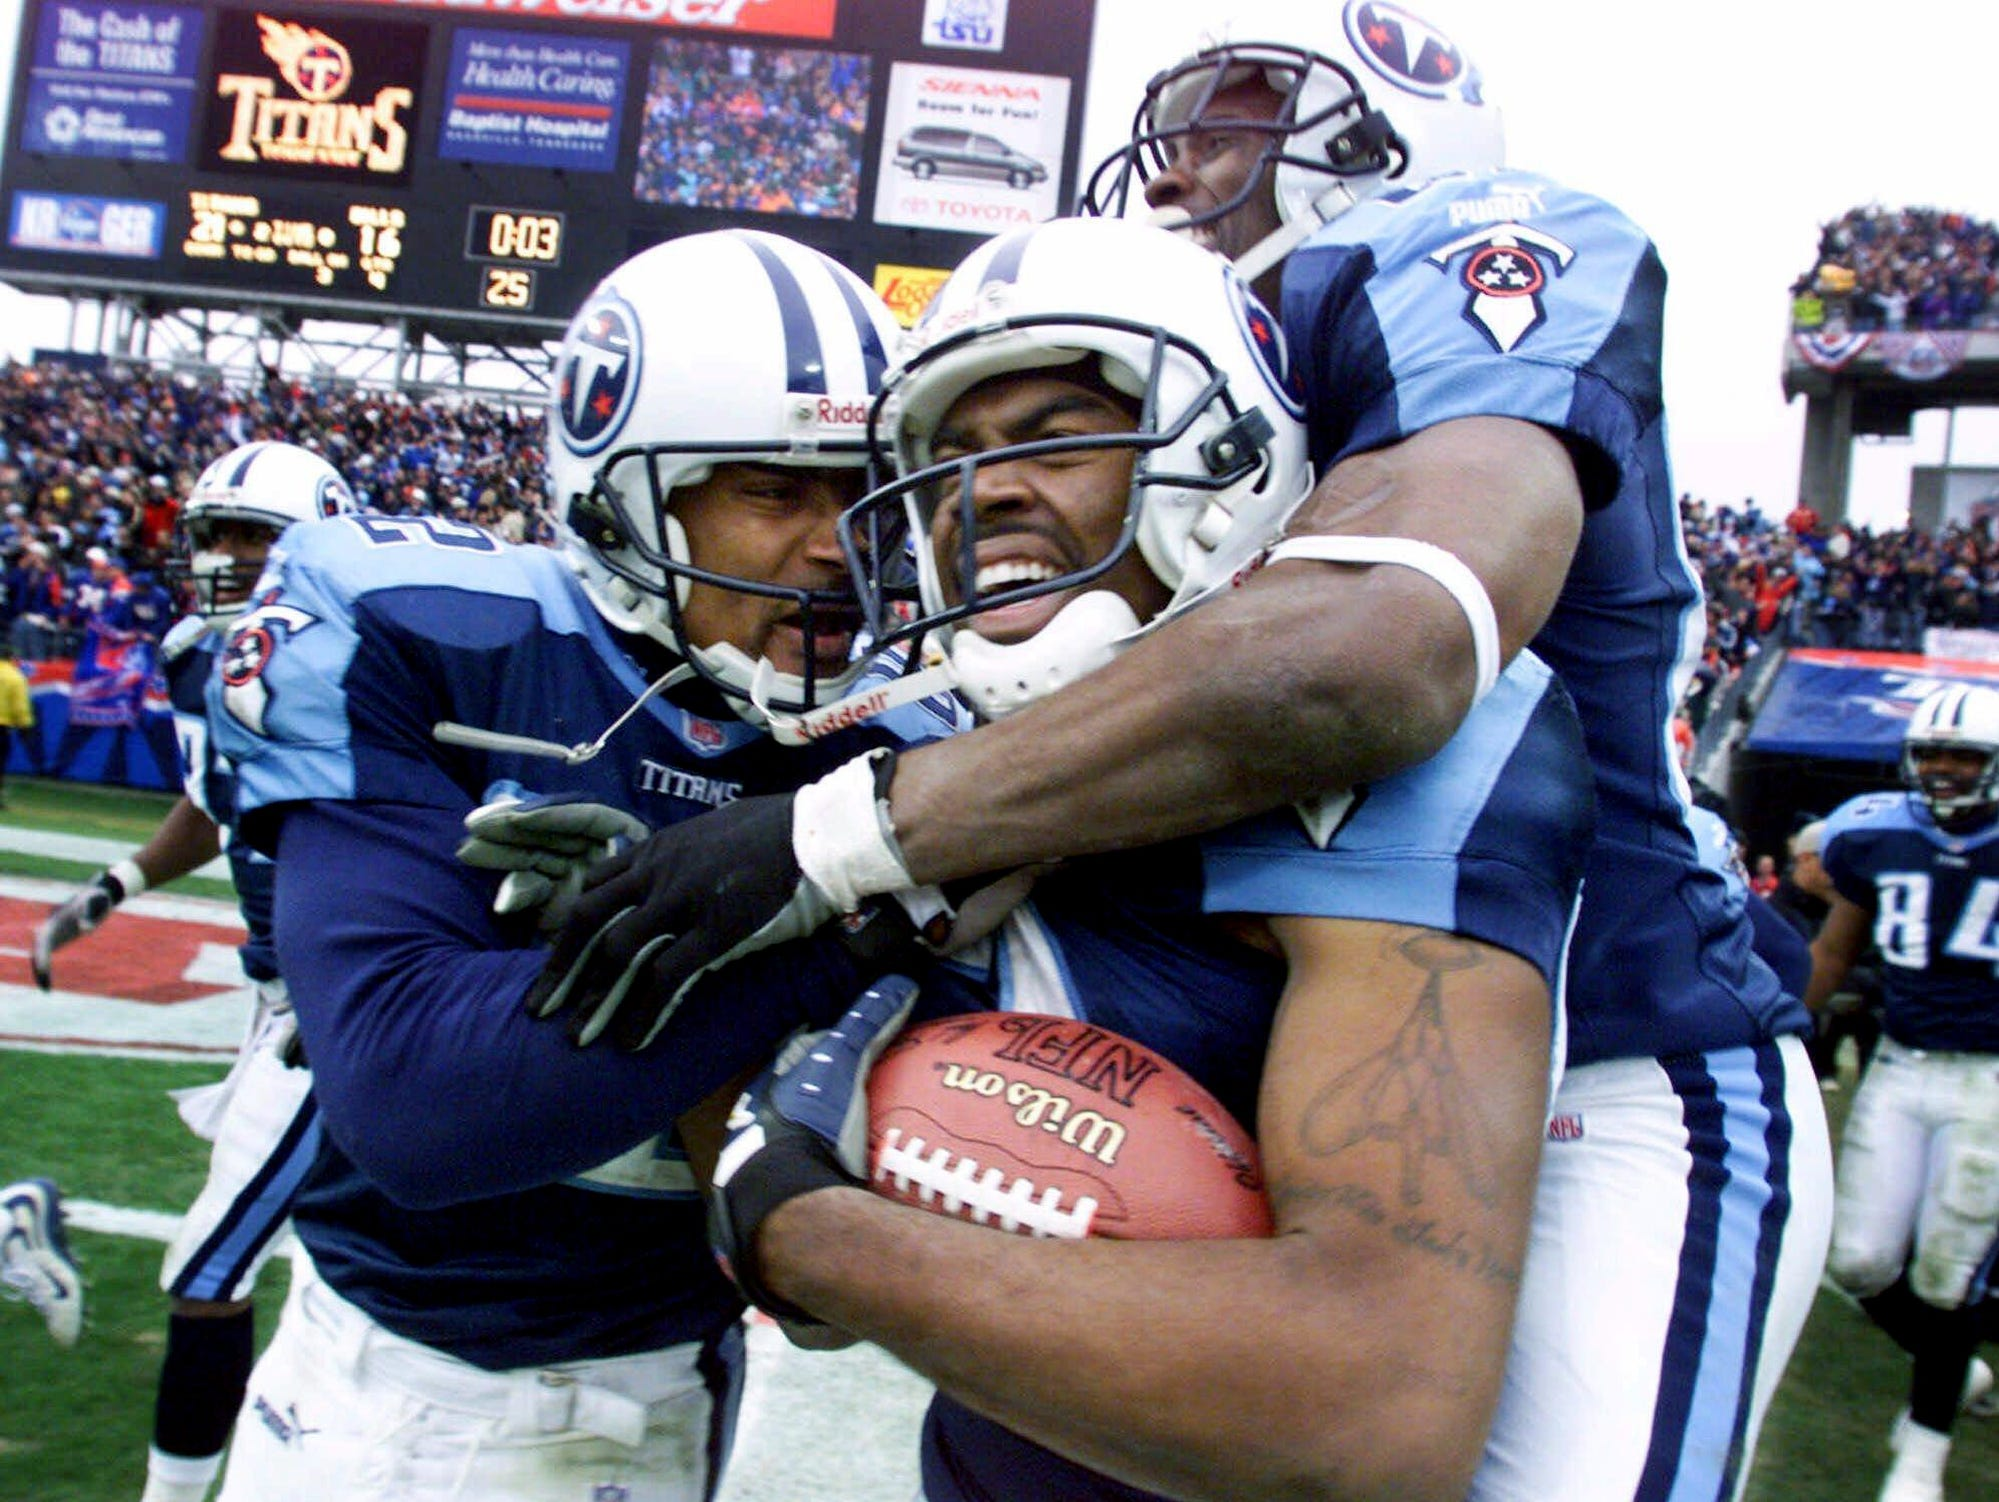 Tennessee Titans wide receiver Kevin Dyson, center, holds onto the ball as he is celebrates with teammates Yancey Thigpen, left, and Samari Rolle after returning a kickoff for a touchdown with 3 seconds left in their AFC wild card game against the Buffalo Bills for a 22-16 victory Jan. 8, 2000.